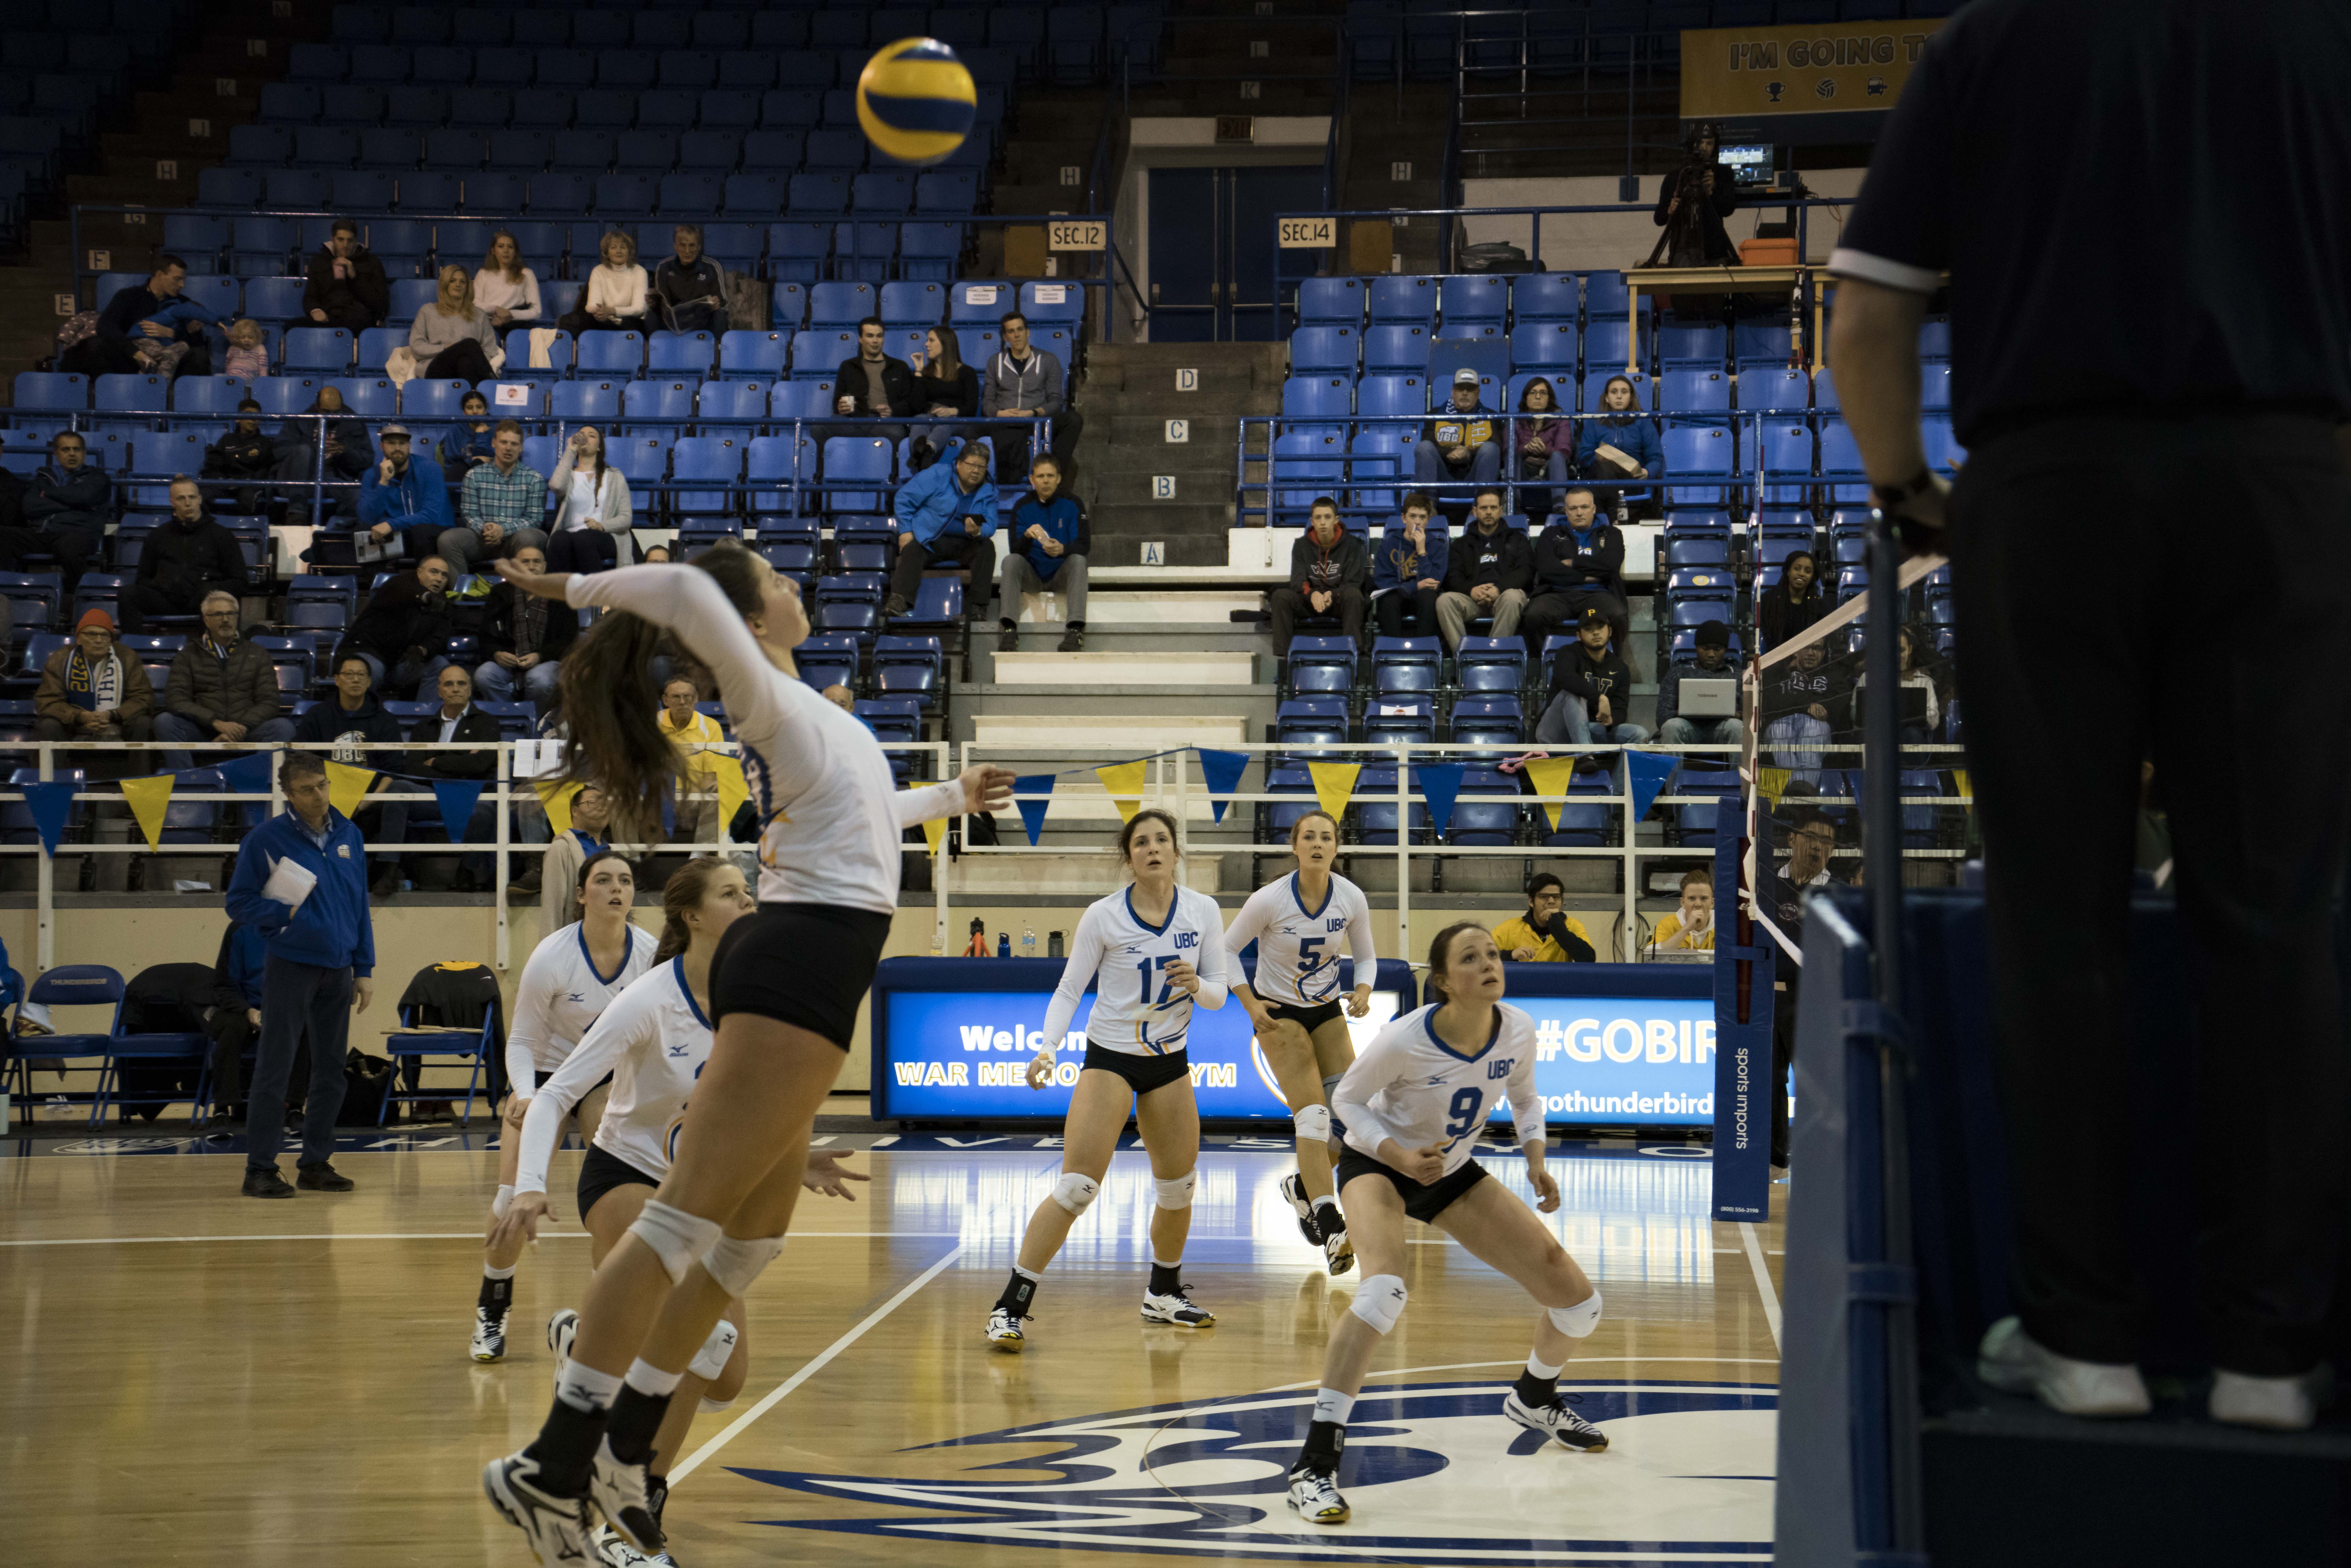 Olivia Furlan sets up to send the ball over the net.